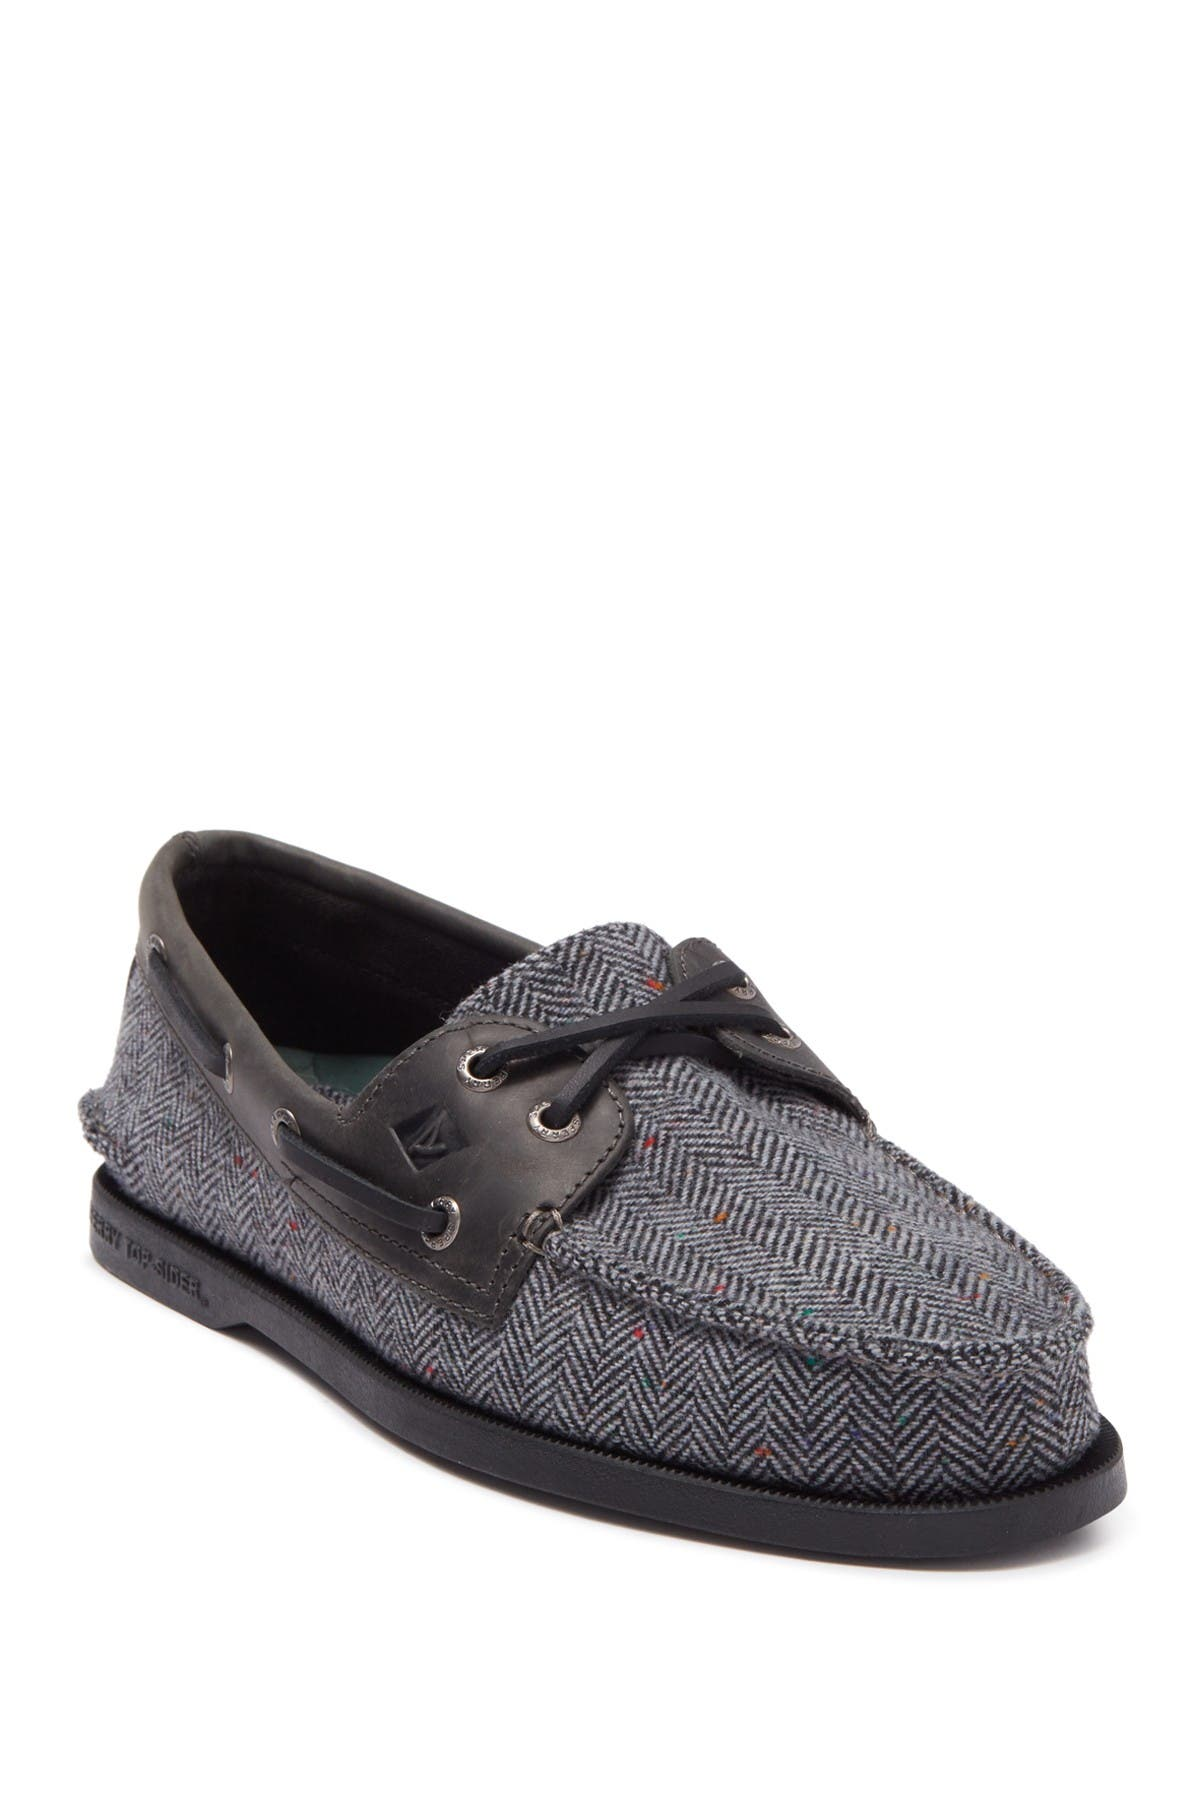 Image of Sperry Authentic Original 2-Eye Tailored Boat Shoe